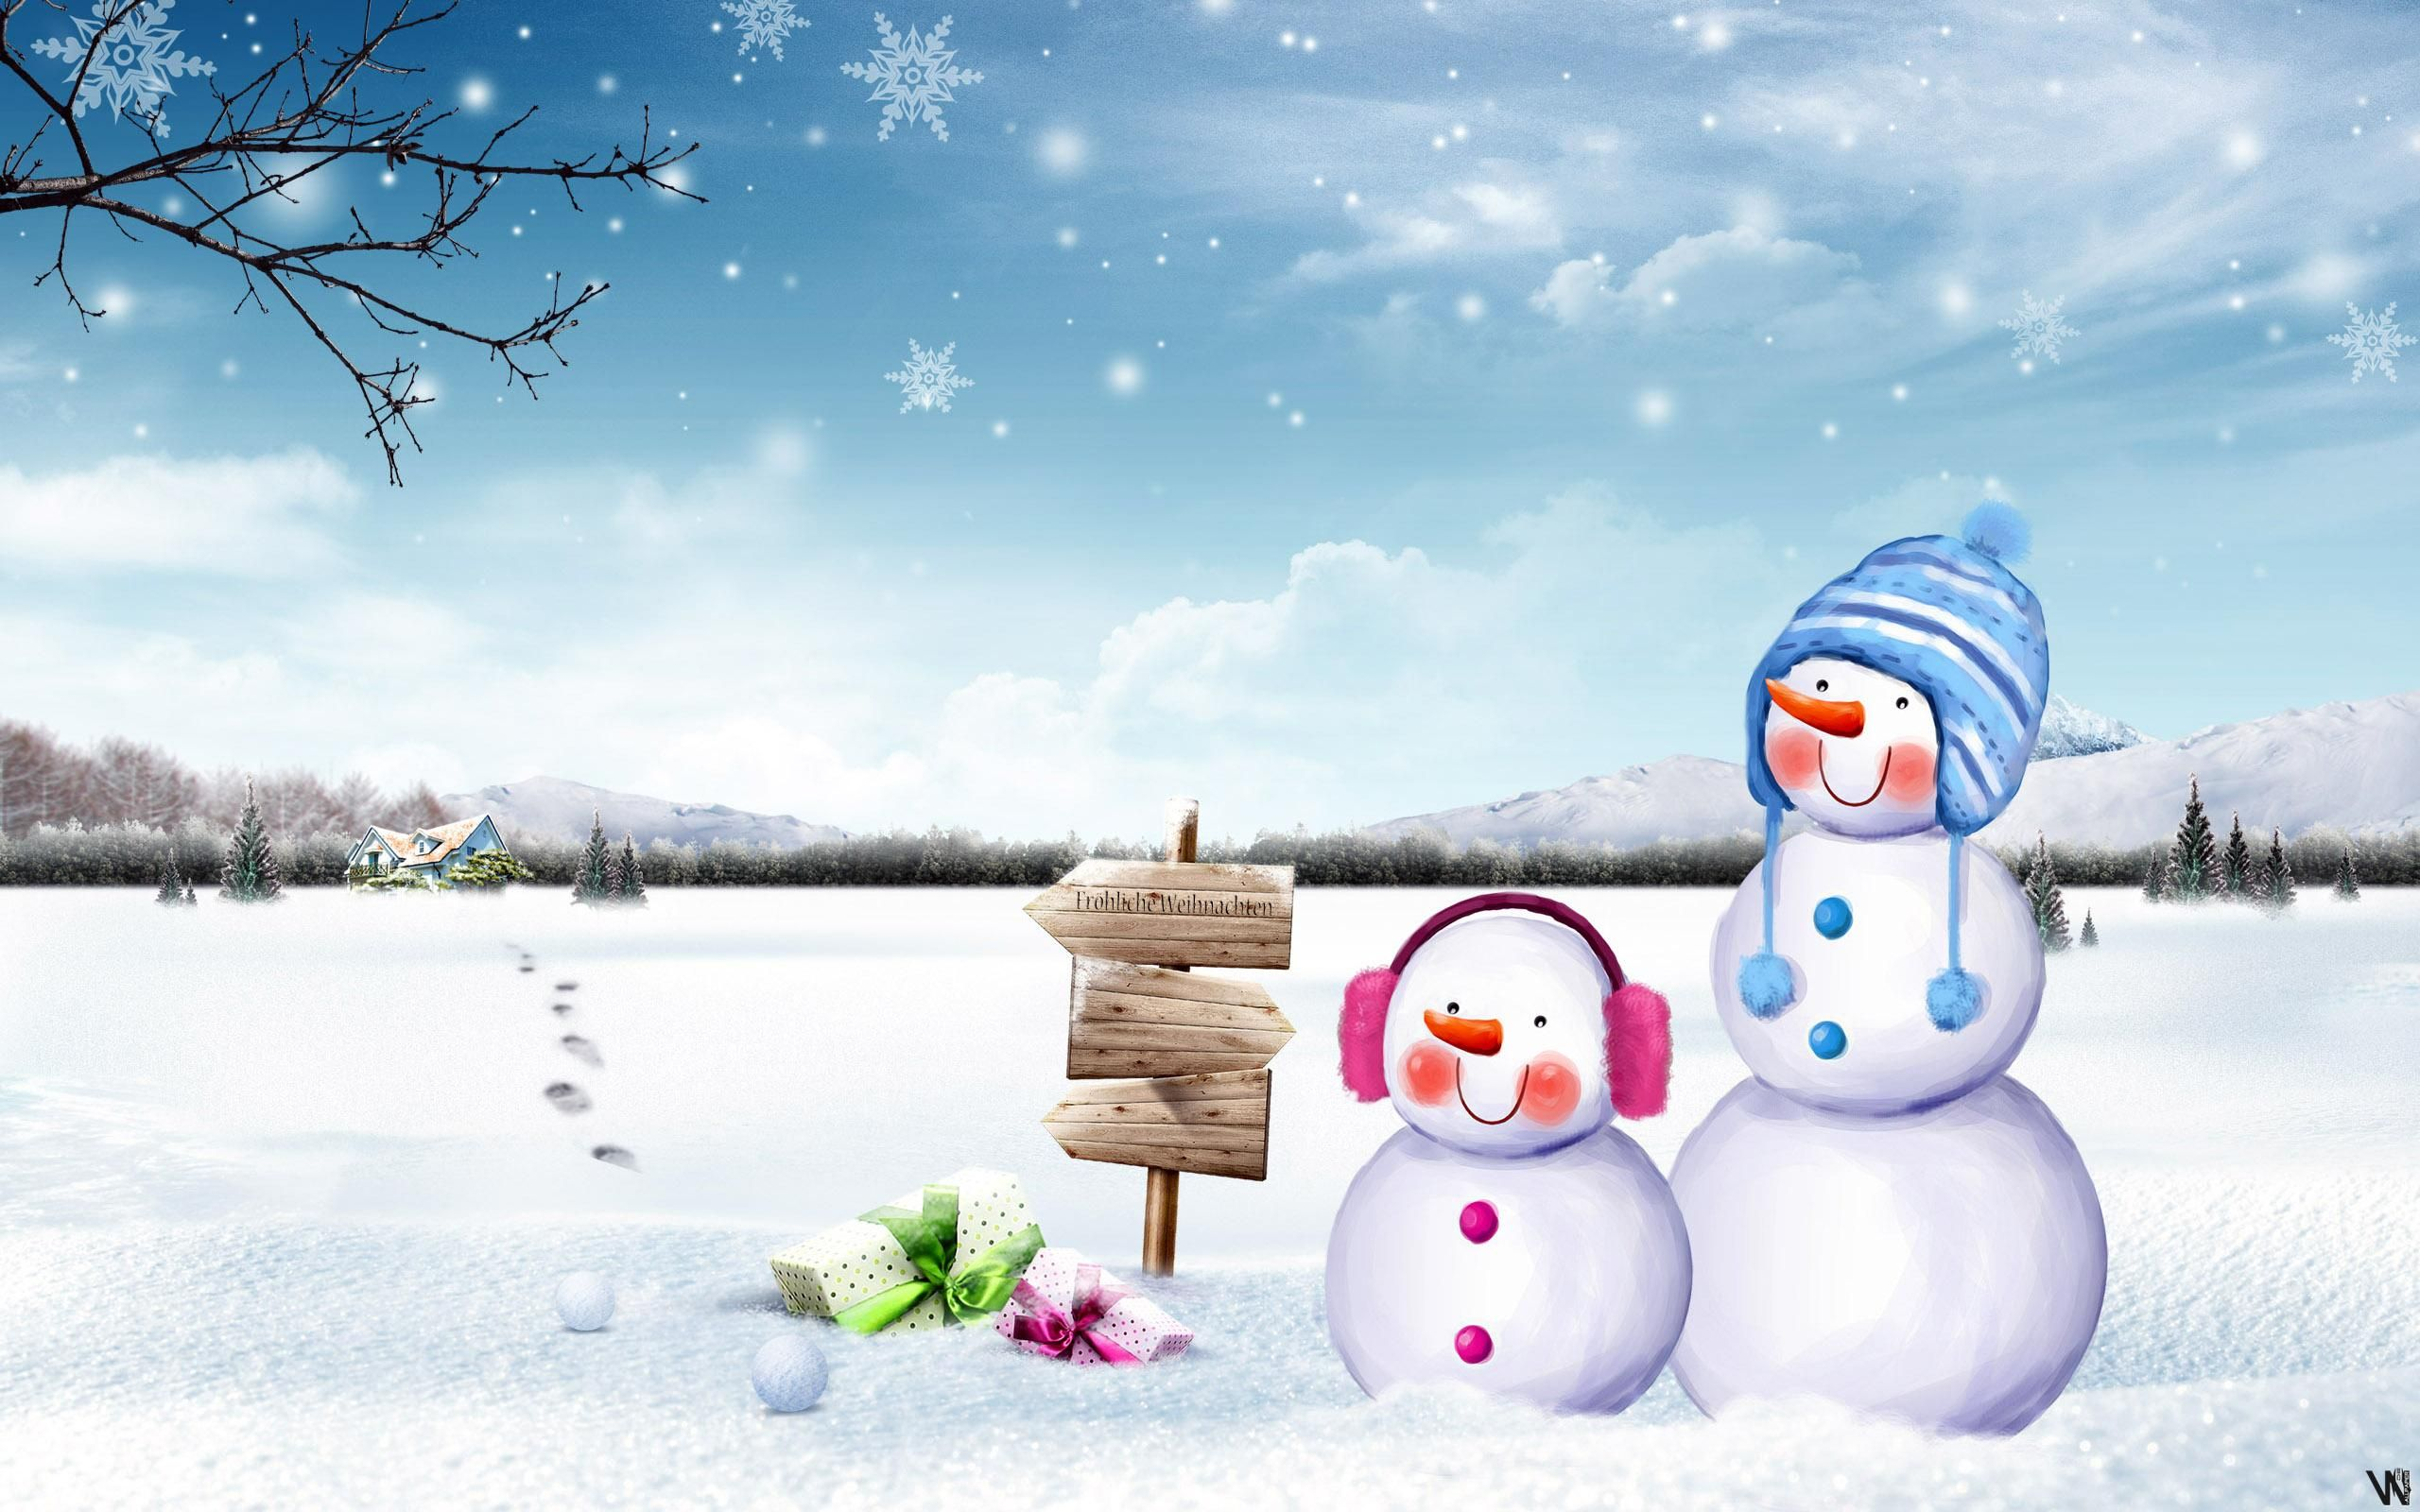 hq wallpapers plus provides different size of snow cartoon hd | hd